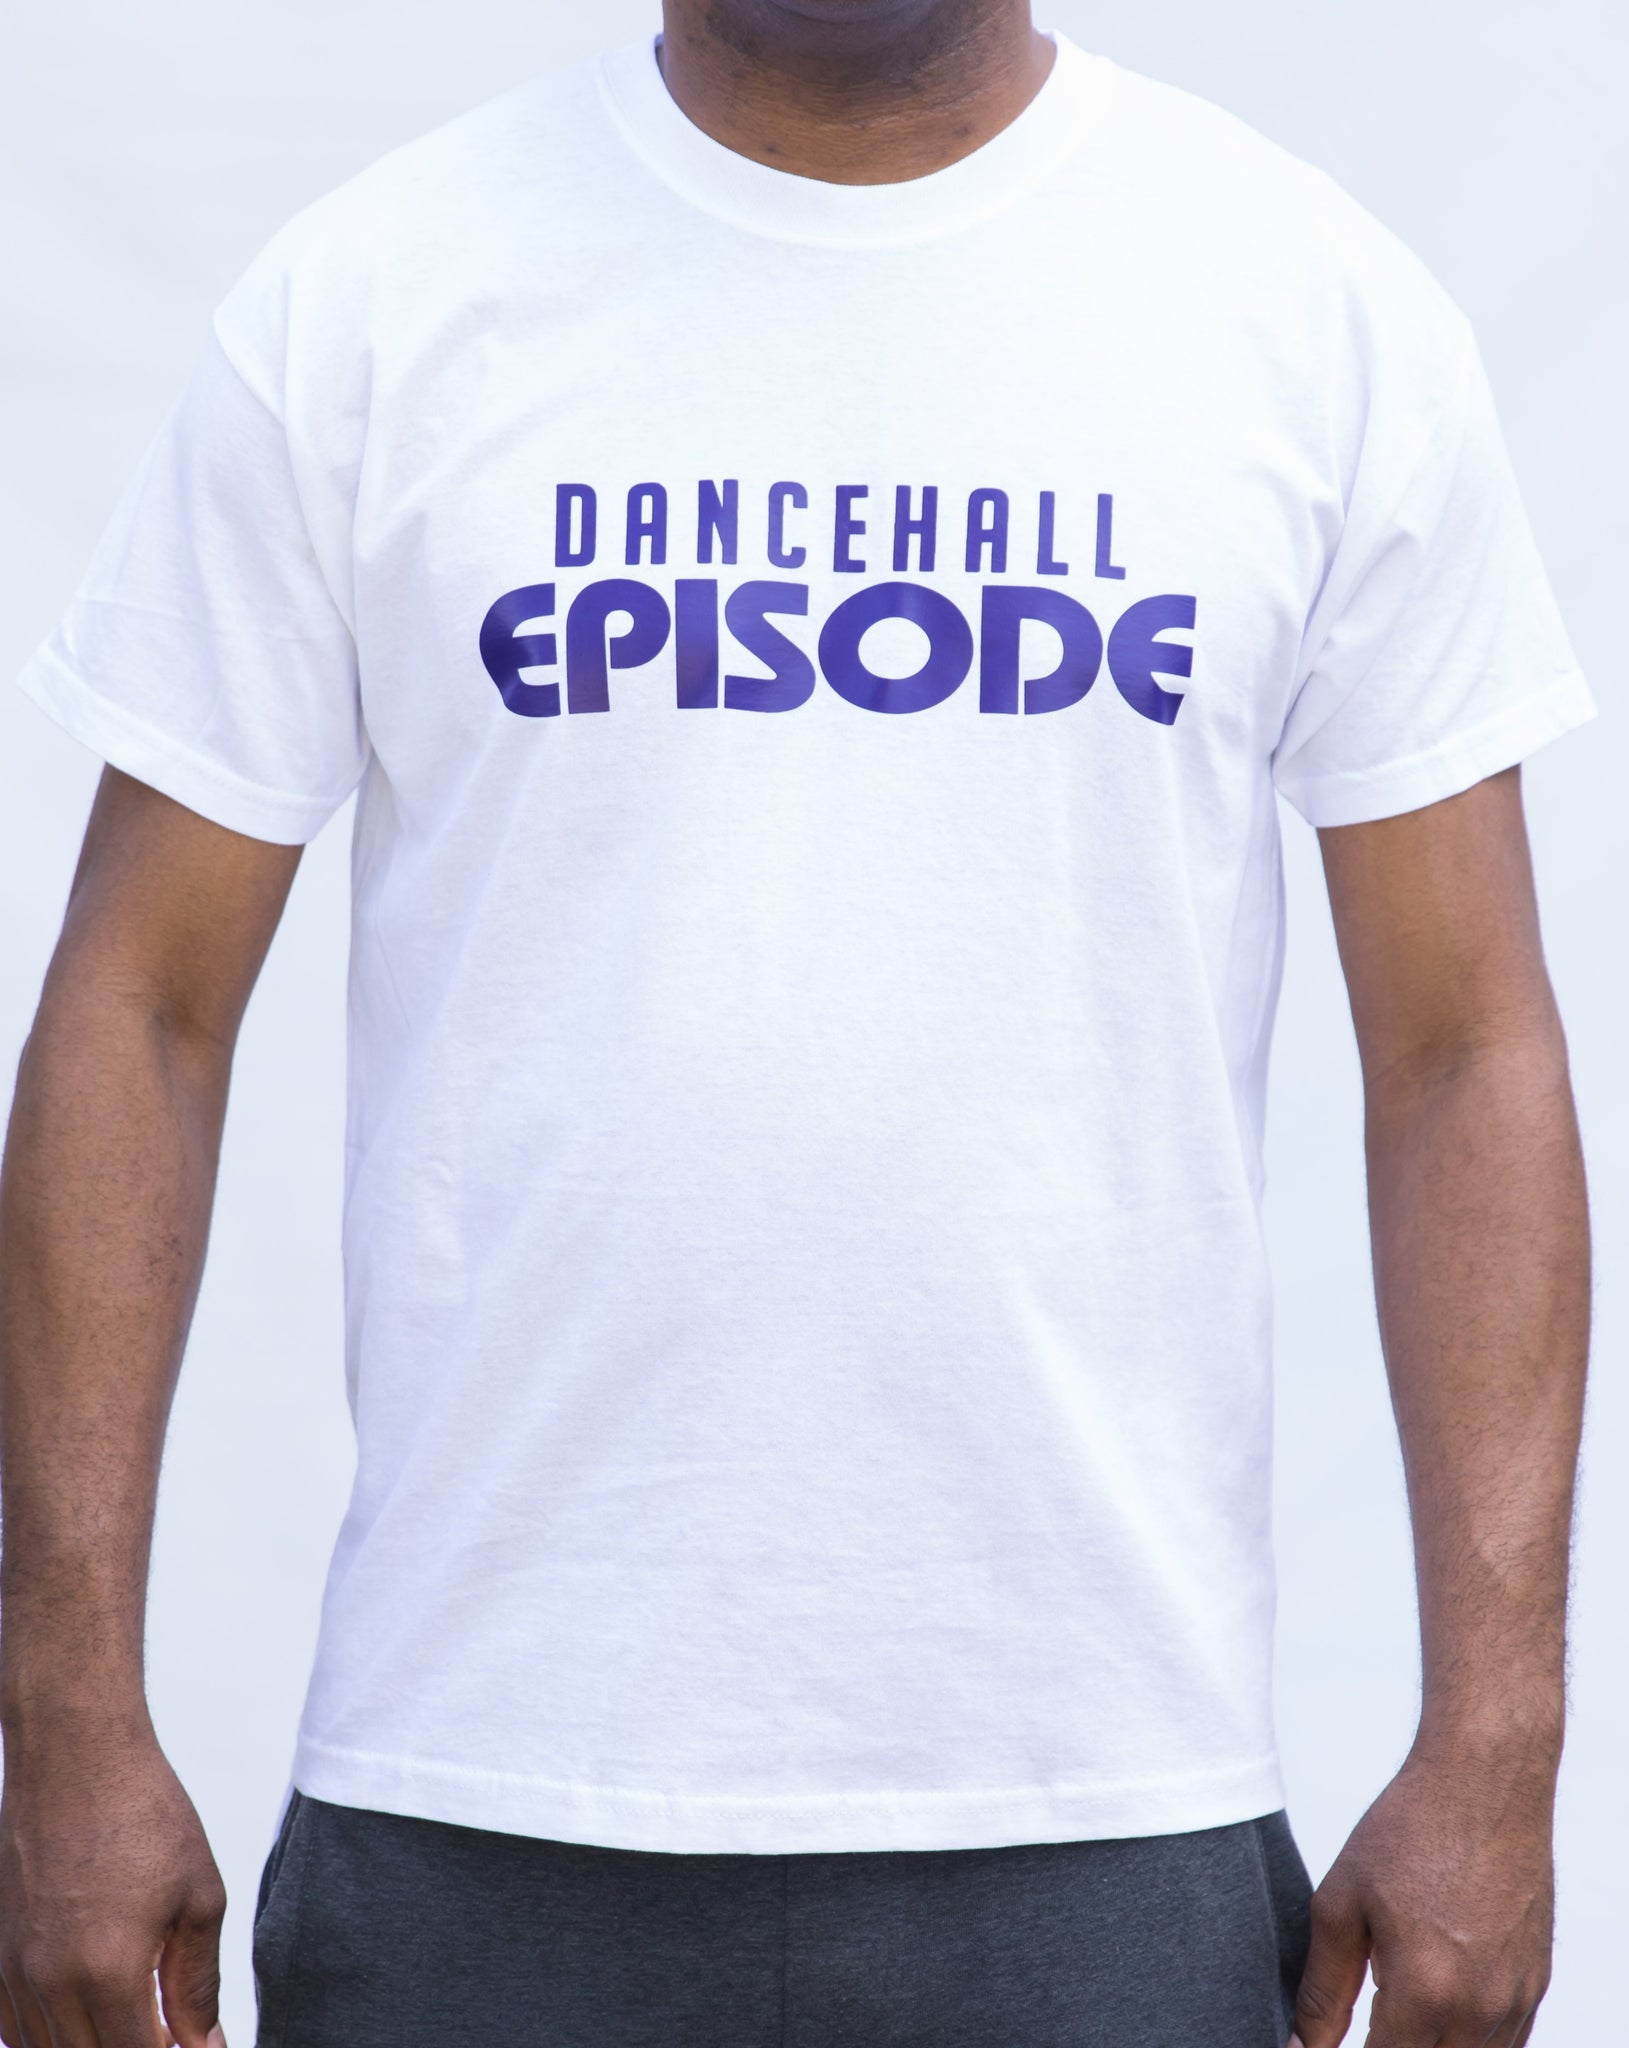 Dancehall Episode Signature T-Shirt - White